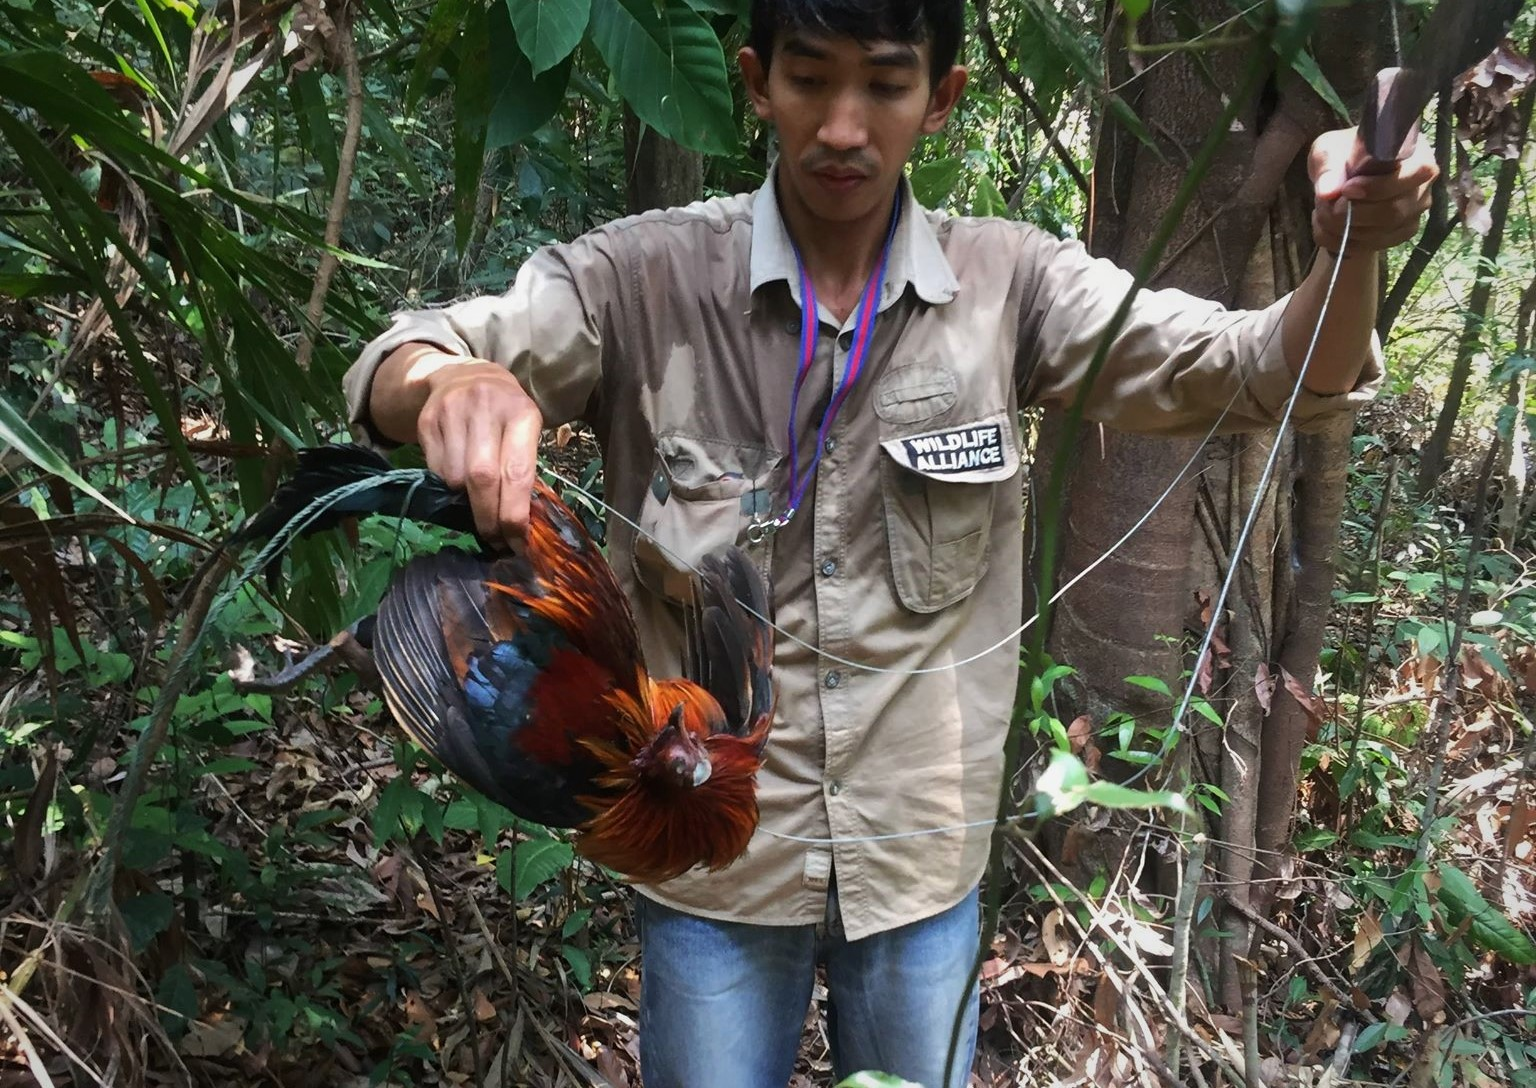 ban snares Call for ban of snares – Dhole caught in snares graphic content lethal weapons that trap and kill animals